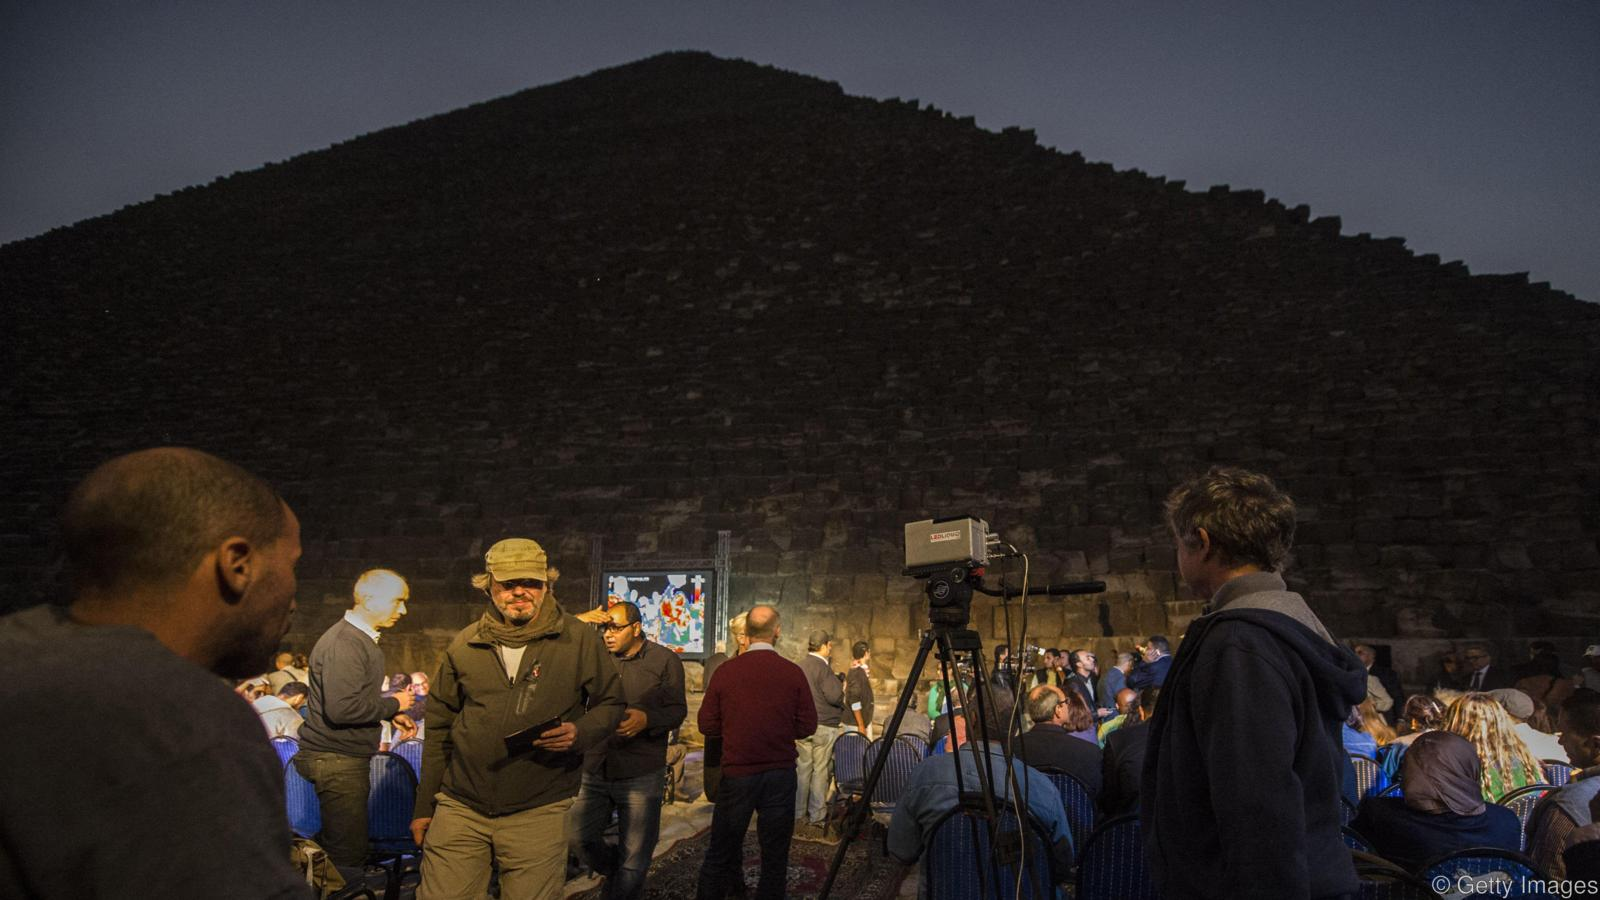 People gather near the great pyramid of Khufu (Cheops) in Giza on the outskirts of Cairo on November 9, 2015, during an infrared thermography experiment to map out the temperature of the walls. AFP PHOTO / KHALED DESOUKI (Photo credit should read KHALED DESOUKI/AFP/Getty Images)